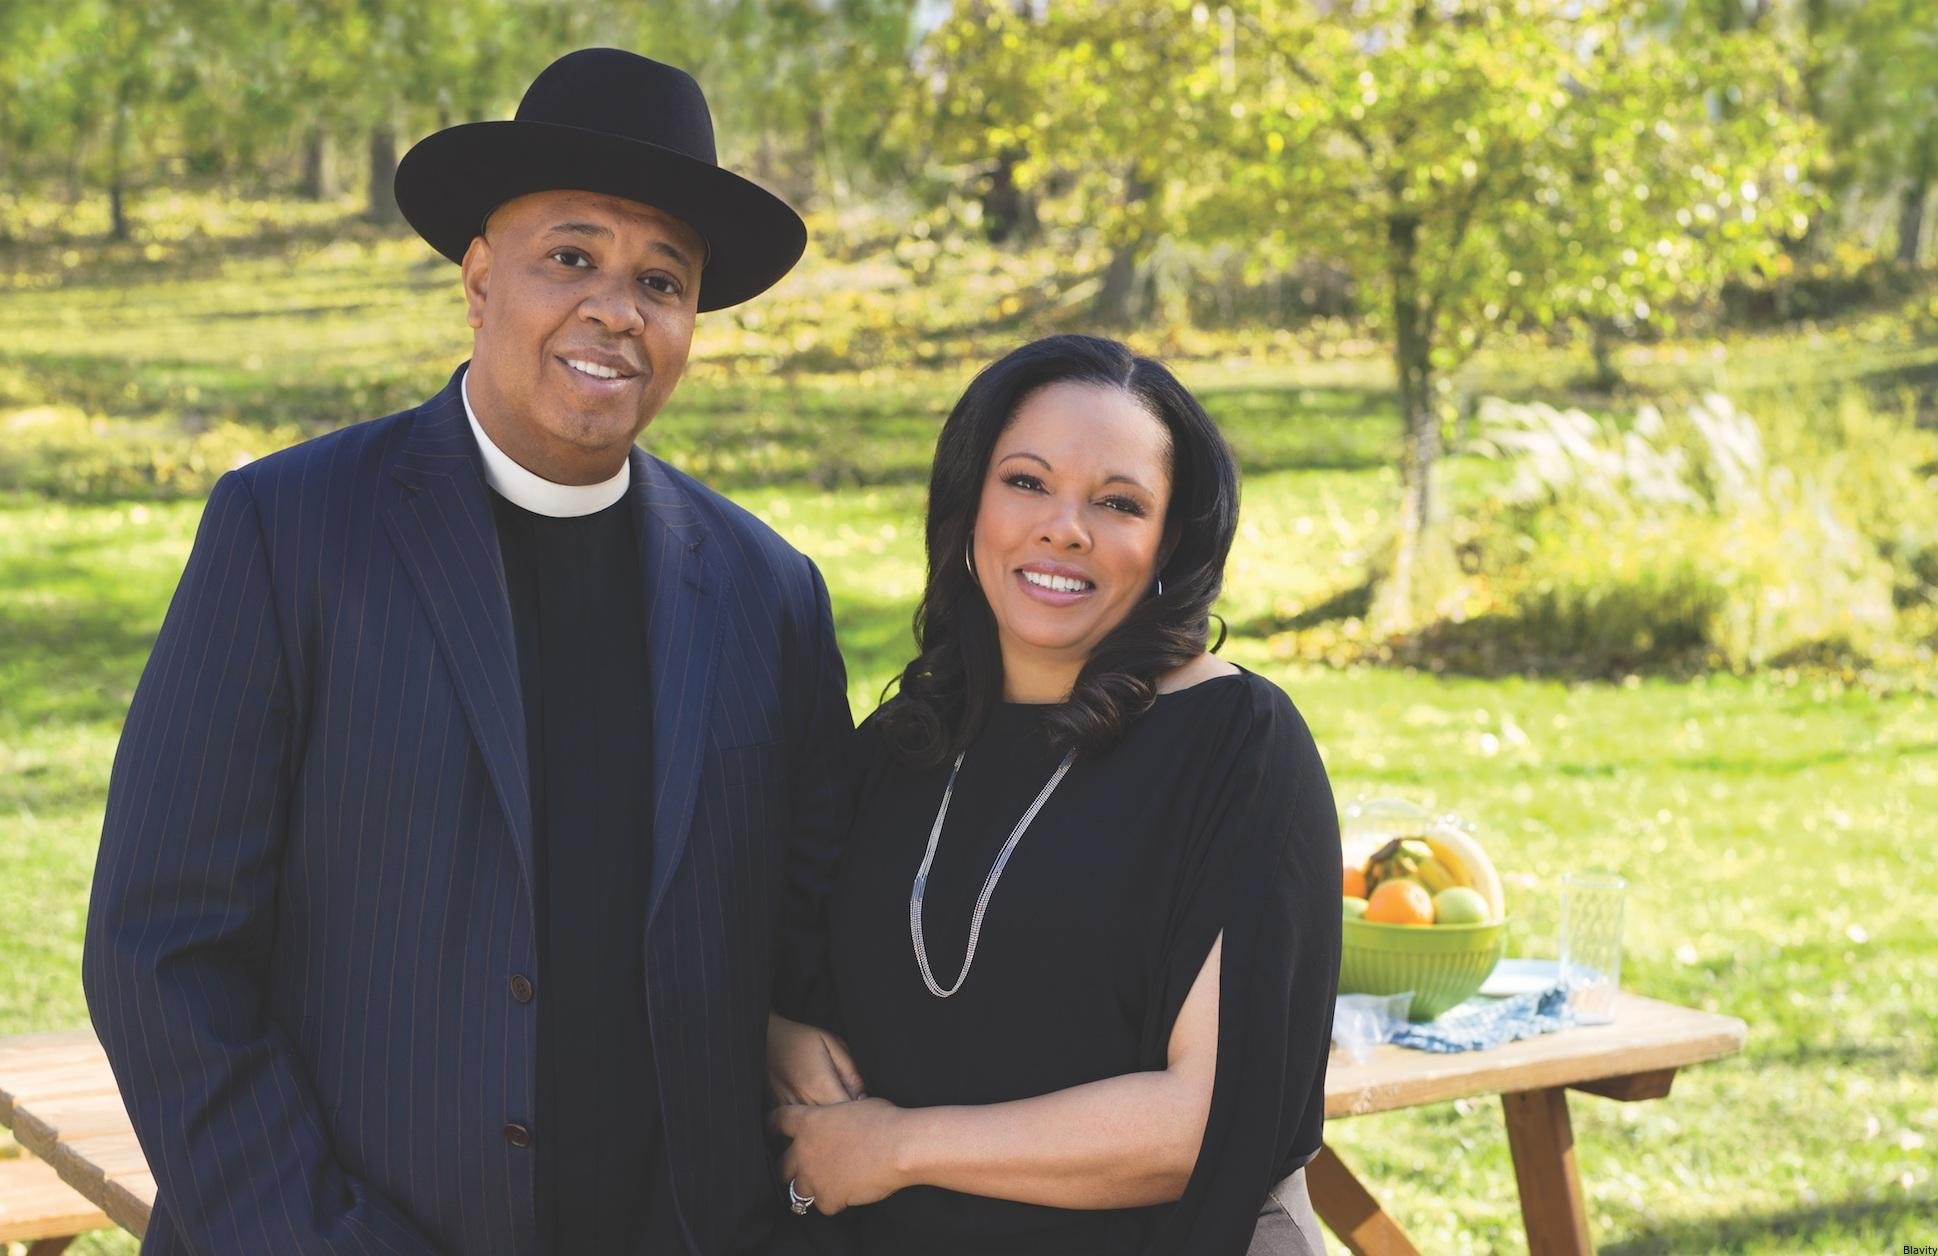 Ask.Screen.Know: A Chat With Rev Run And Justine Simmons About Diabetes And How Black Families Can Maintain A Healthy Lifestyle